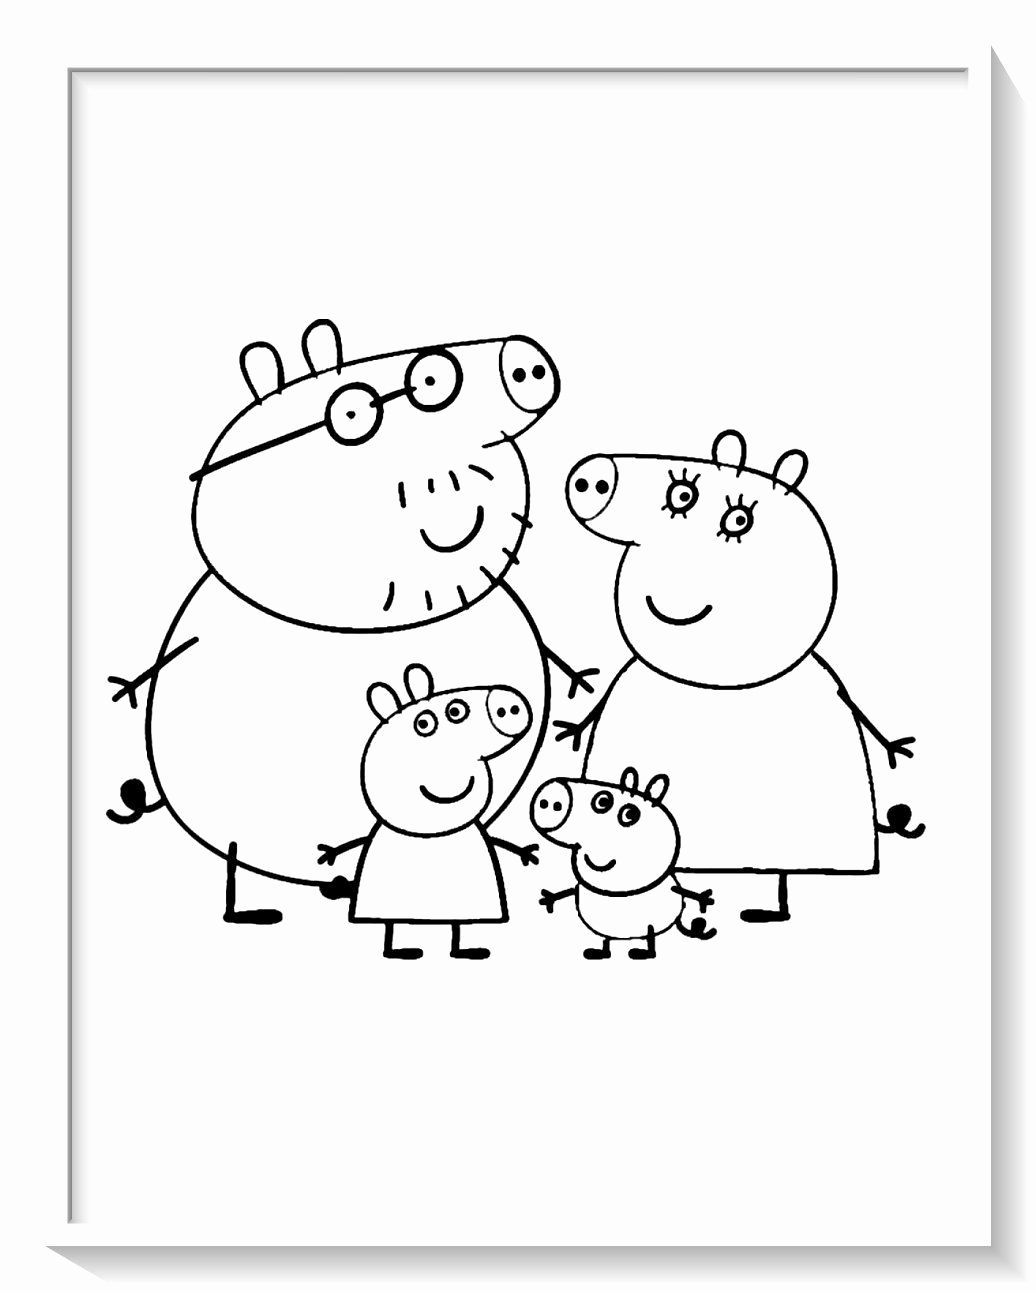 Pin By Mineahau On Varitys Peppa Pig Coloring Pages Peppa Pig Colouring Family Coloring Pages